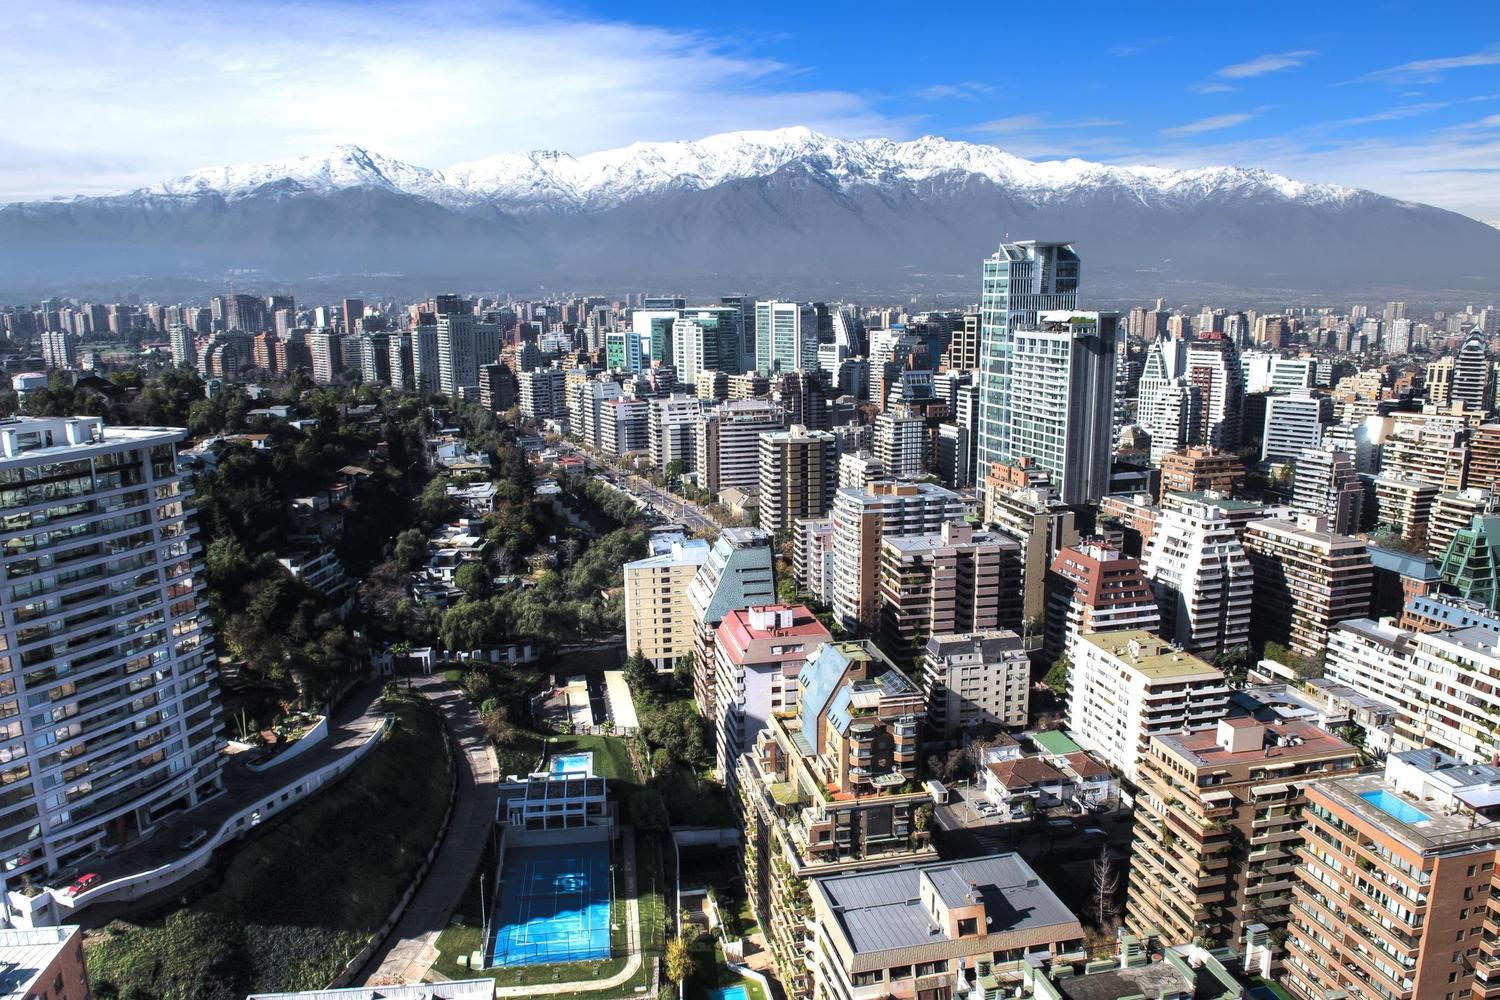 The skyline of Santiago de Chile